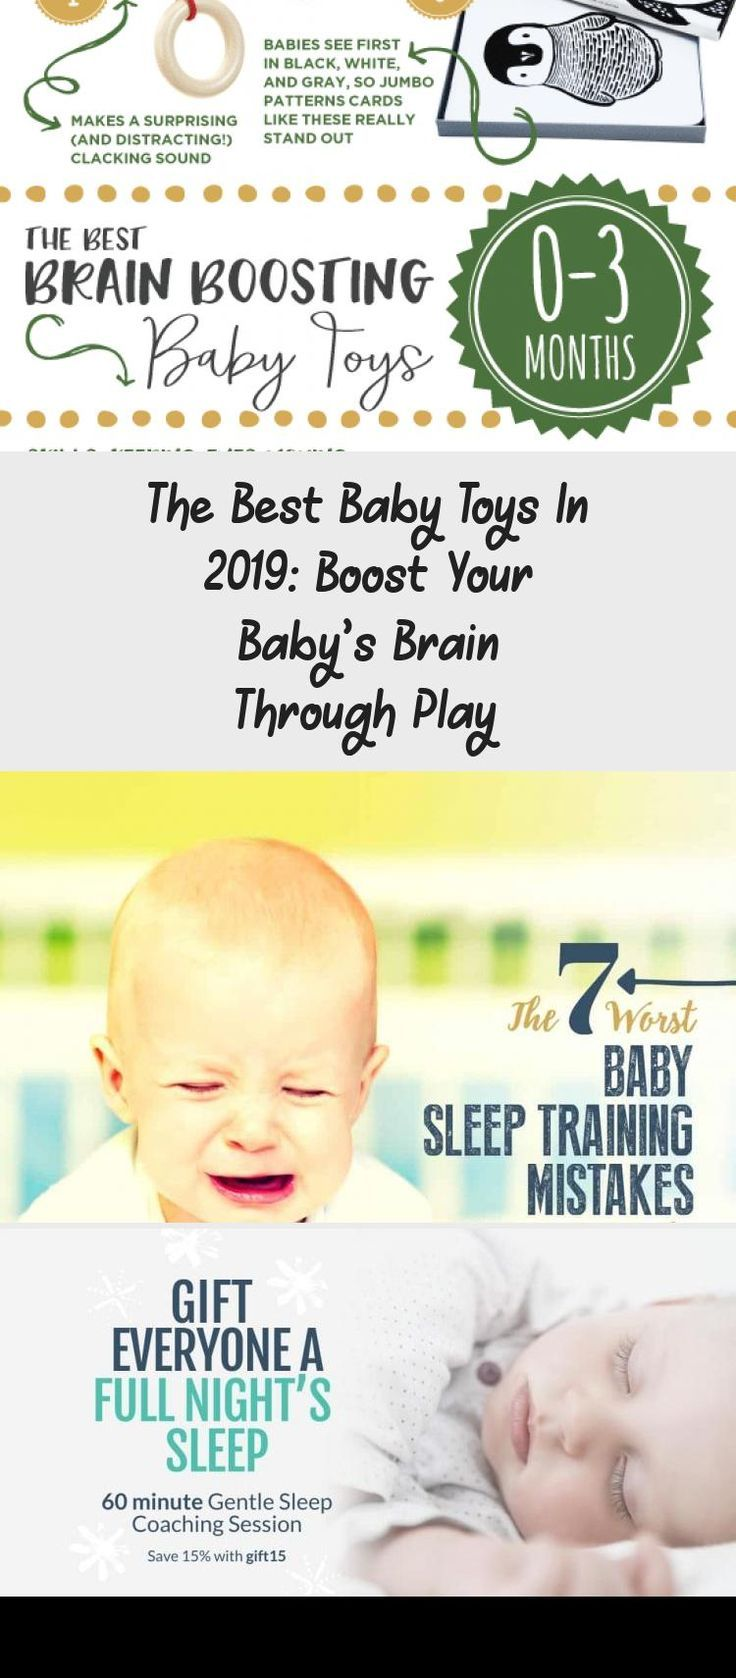 69 Months The Best BrainBoosting Baby Toys A Buying Guide for Smart Parents  ub 69 Months The Best BrainBoosting Baby Toys A Buying Guide for Smart Parents  ub